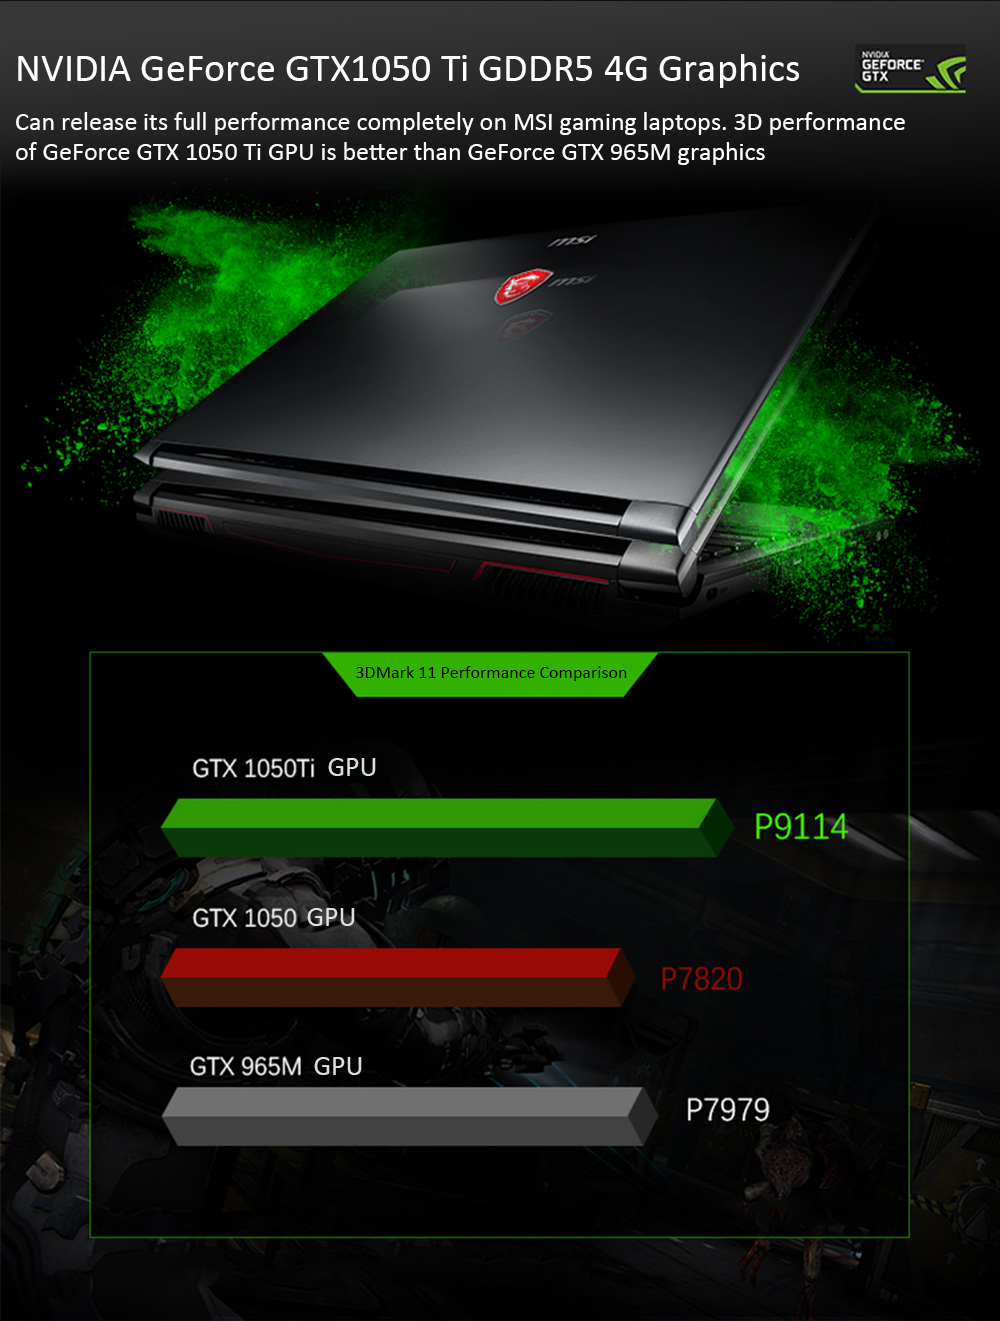 MSI GL62M 7REX - 1252CN Gaming Laptop 15.6 inch Windows 10 Home Chinese Version Intel Core i7-7700HQ Quad Core 2.8GHz 8GB RAM 1TB HDD HDMI Type-C